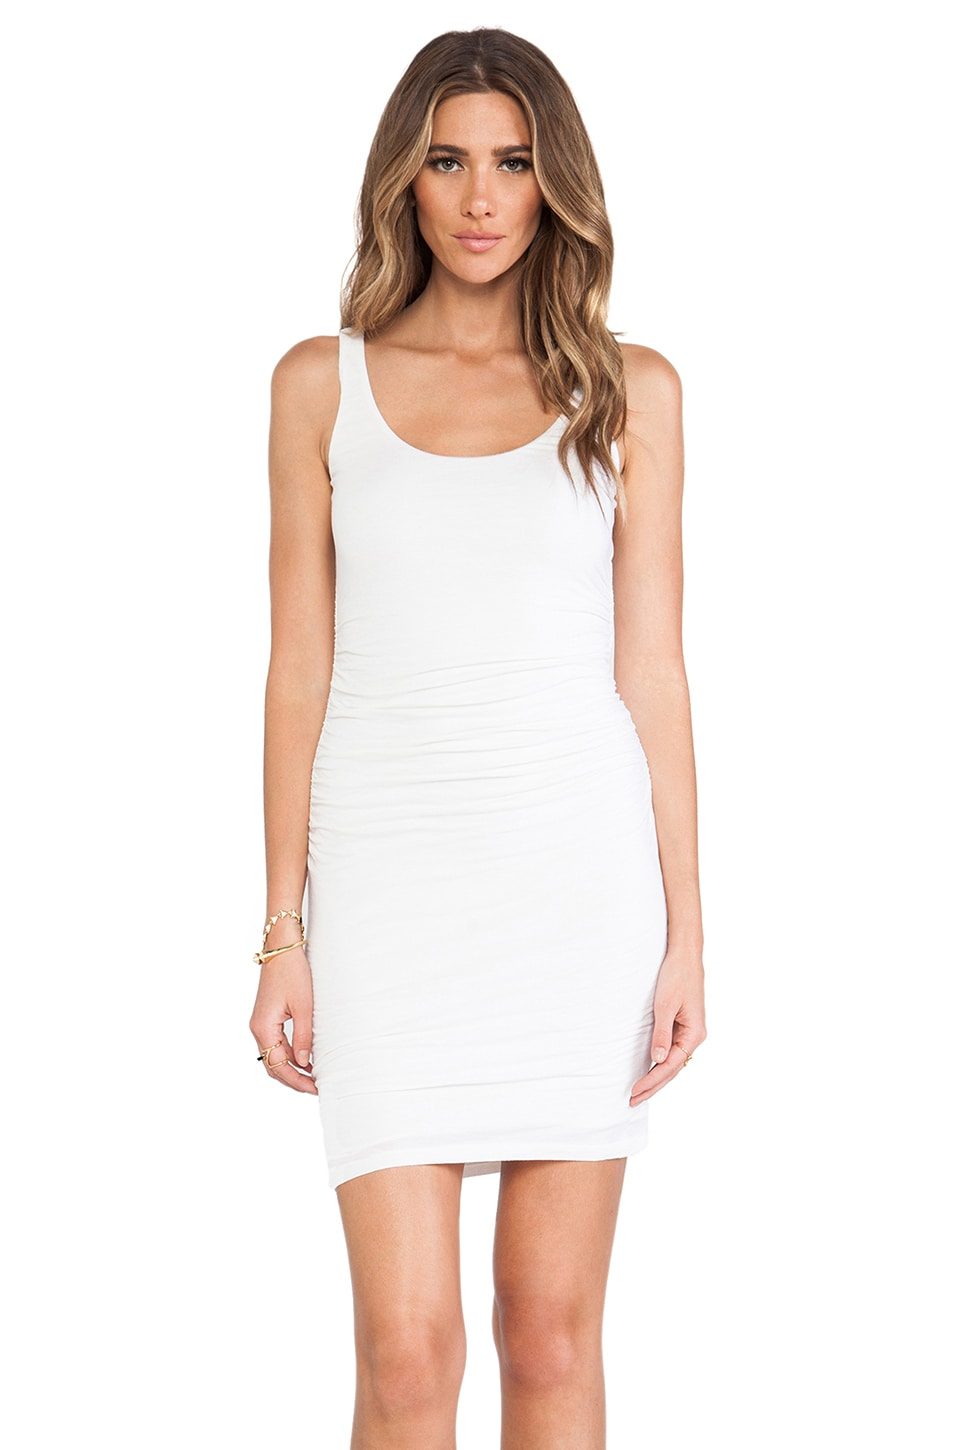 Velvet by Graham & Spencer Gauzy Whisper Melody Dress in Coconut